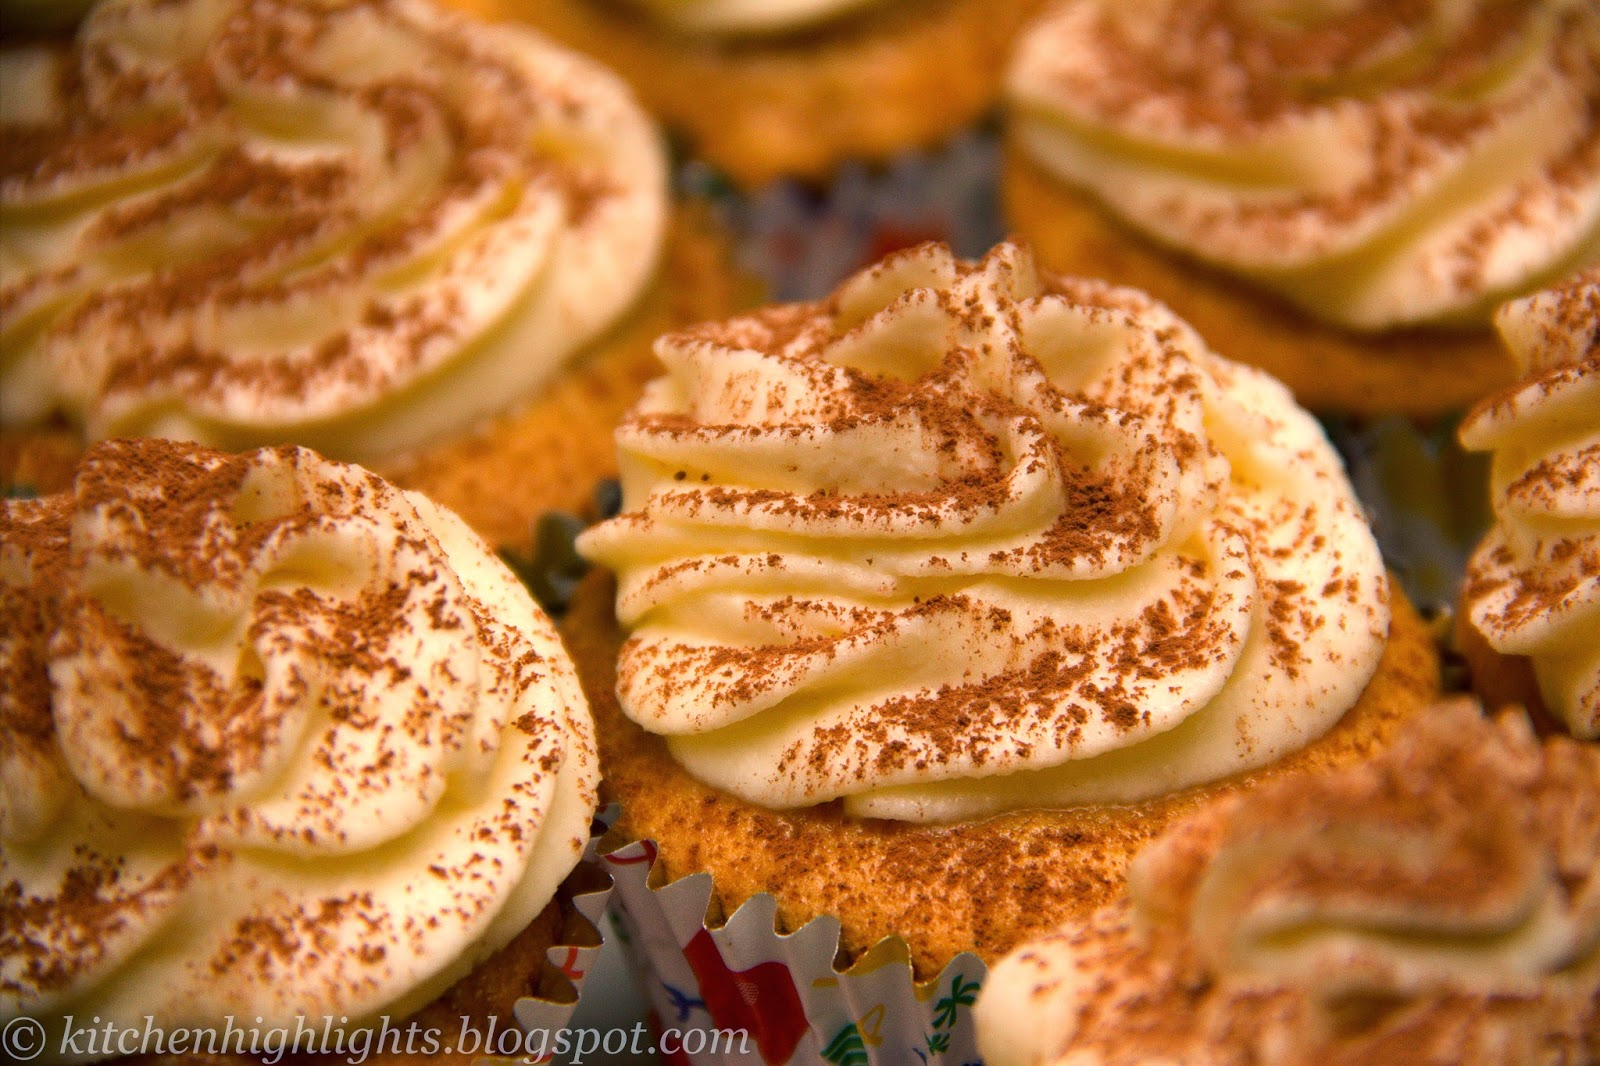 A decadent fusion between elegant tiramisu and delicious cupcakes